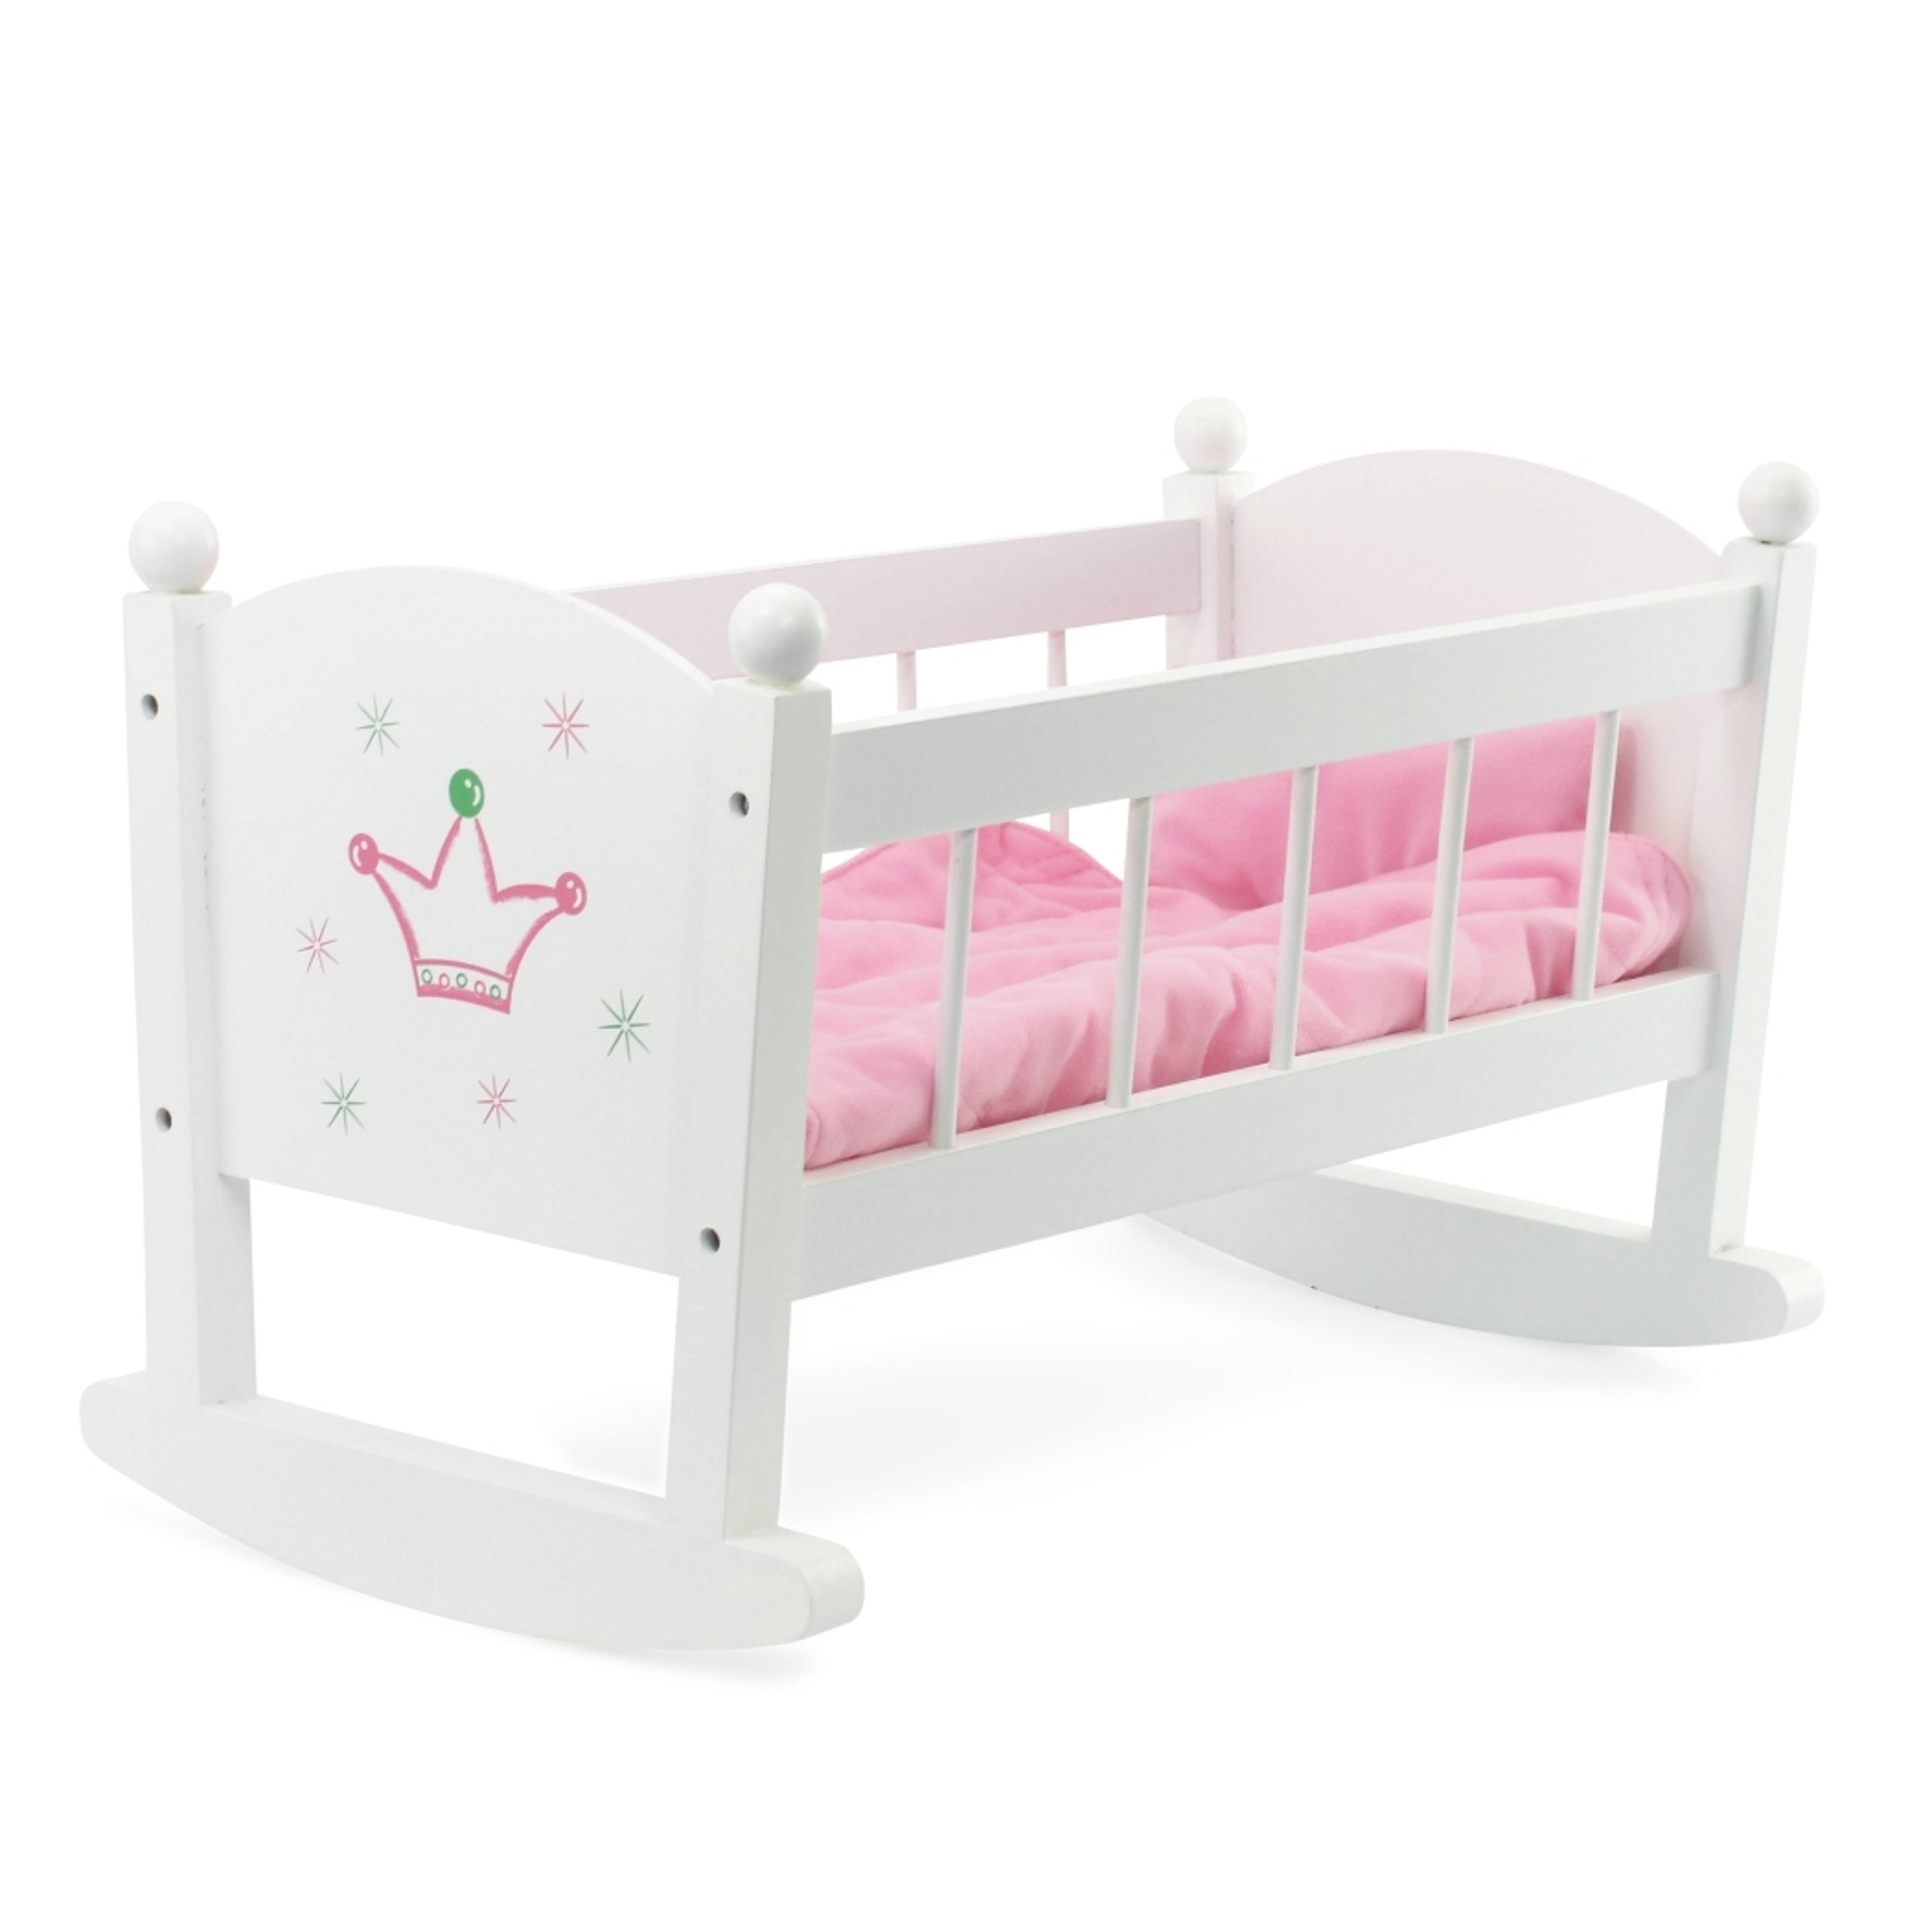 Baby Doll Cradle or Crib Rocking Furniture | Fits Baby Dolls and 18 Inch American Girl... by Emily Rose Doll Clothes